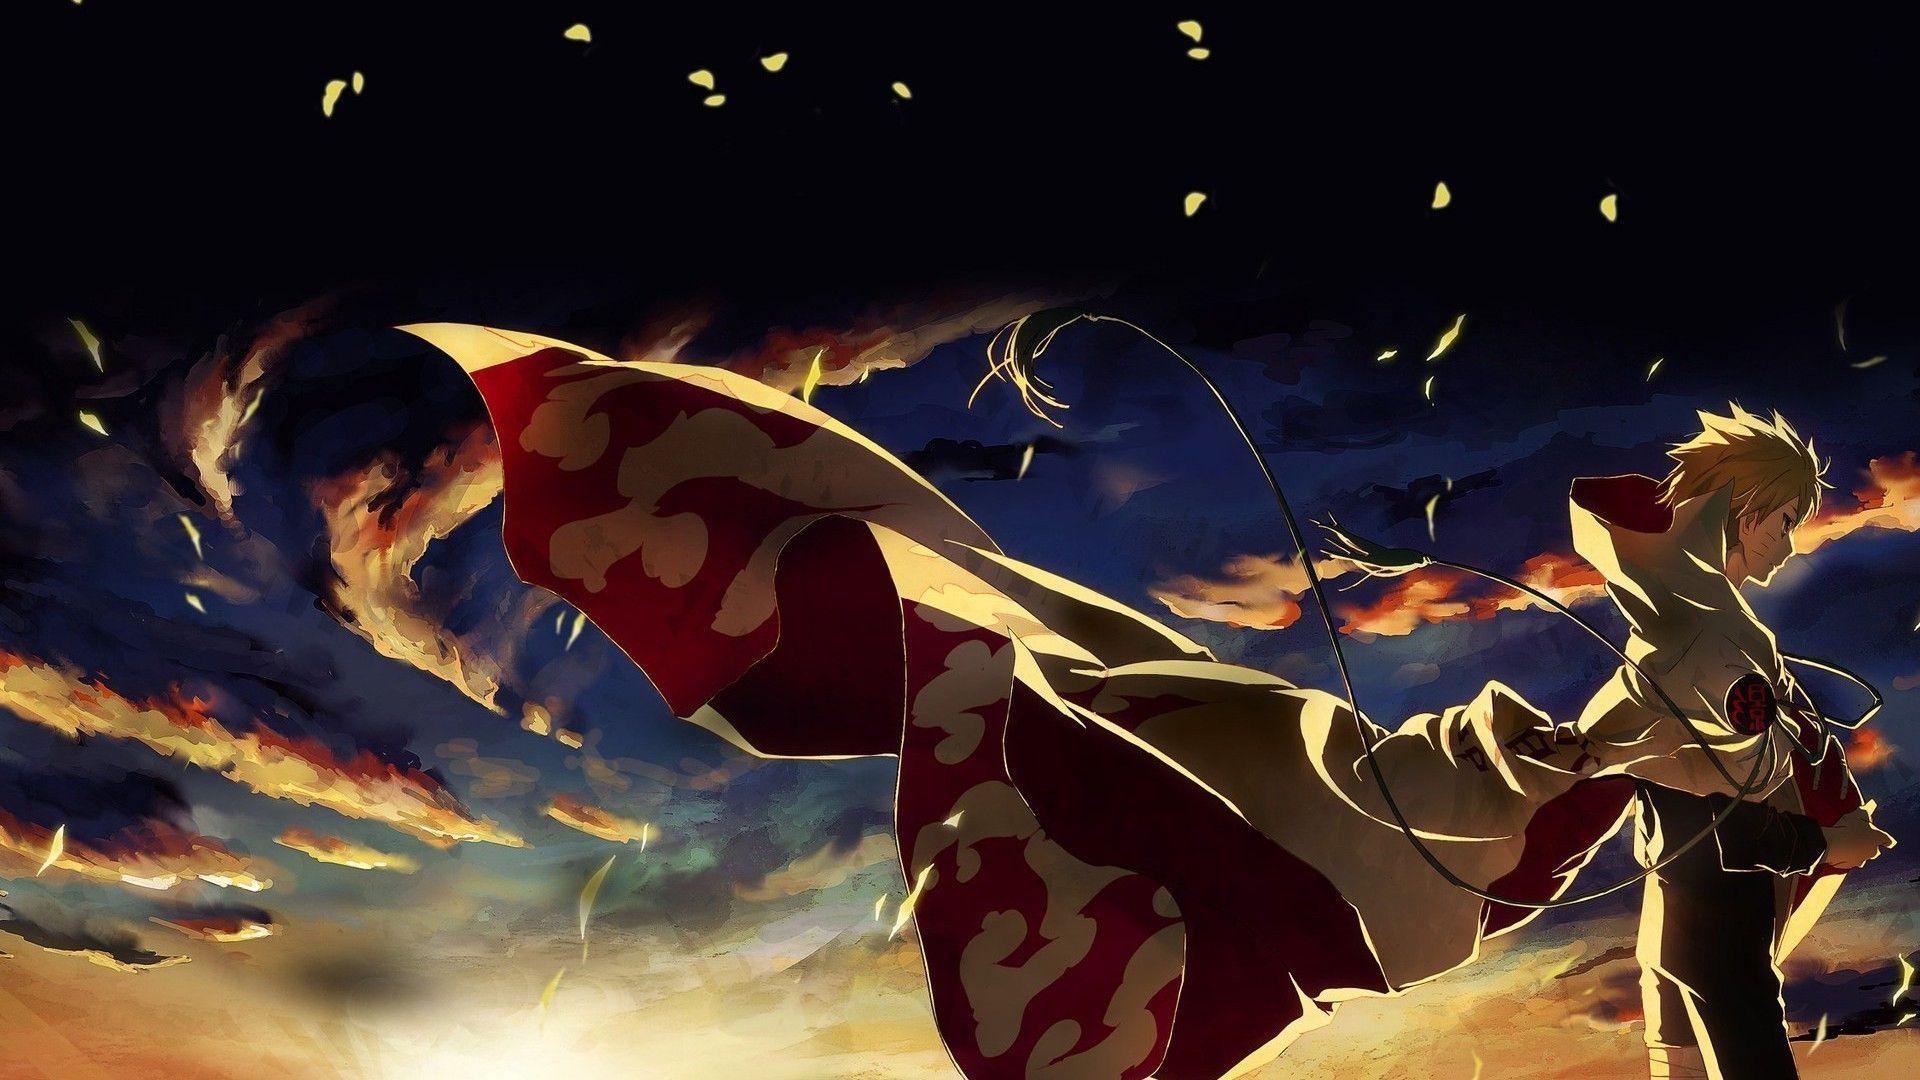 Naruto Laptop Wallpaper Posted By Michelle Tremblay